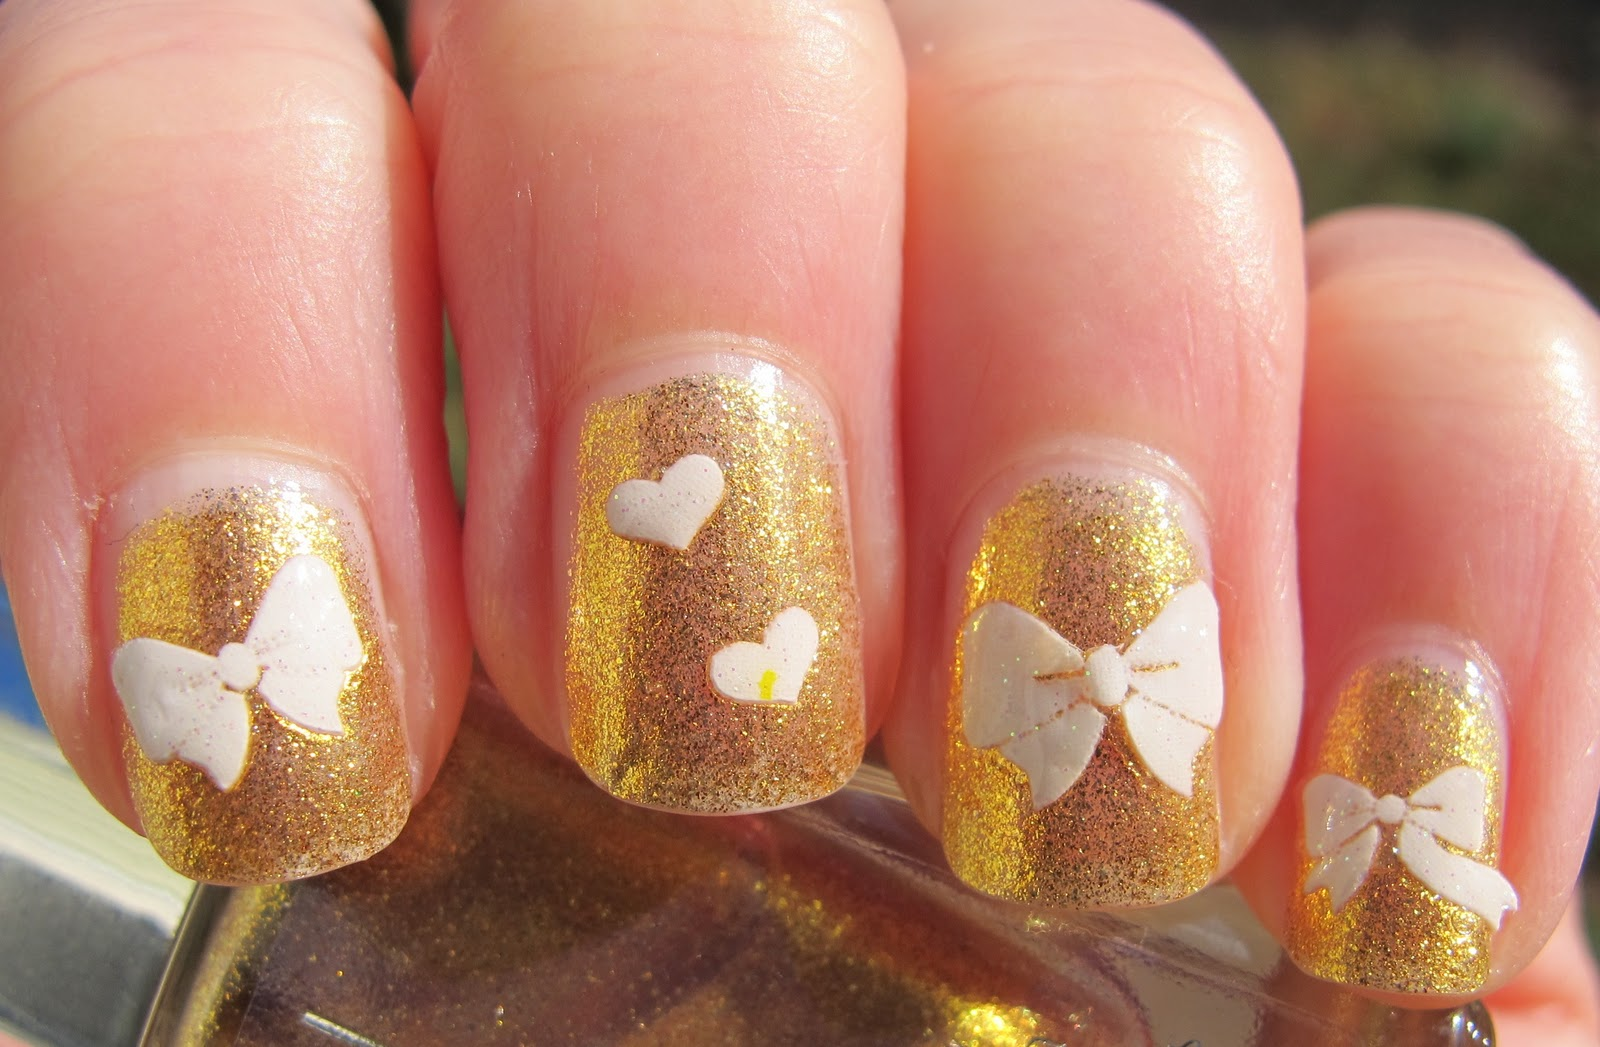 Never Enough Nails Born Pretty Store Nail Art Stickers Adorable